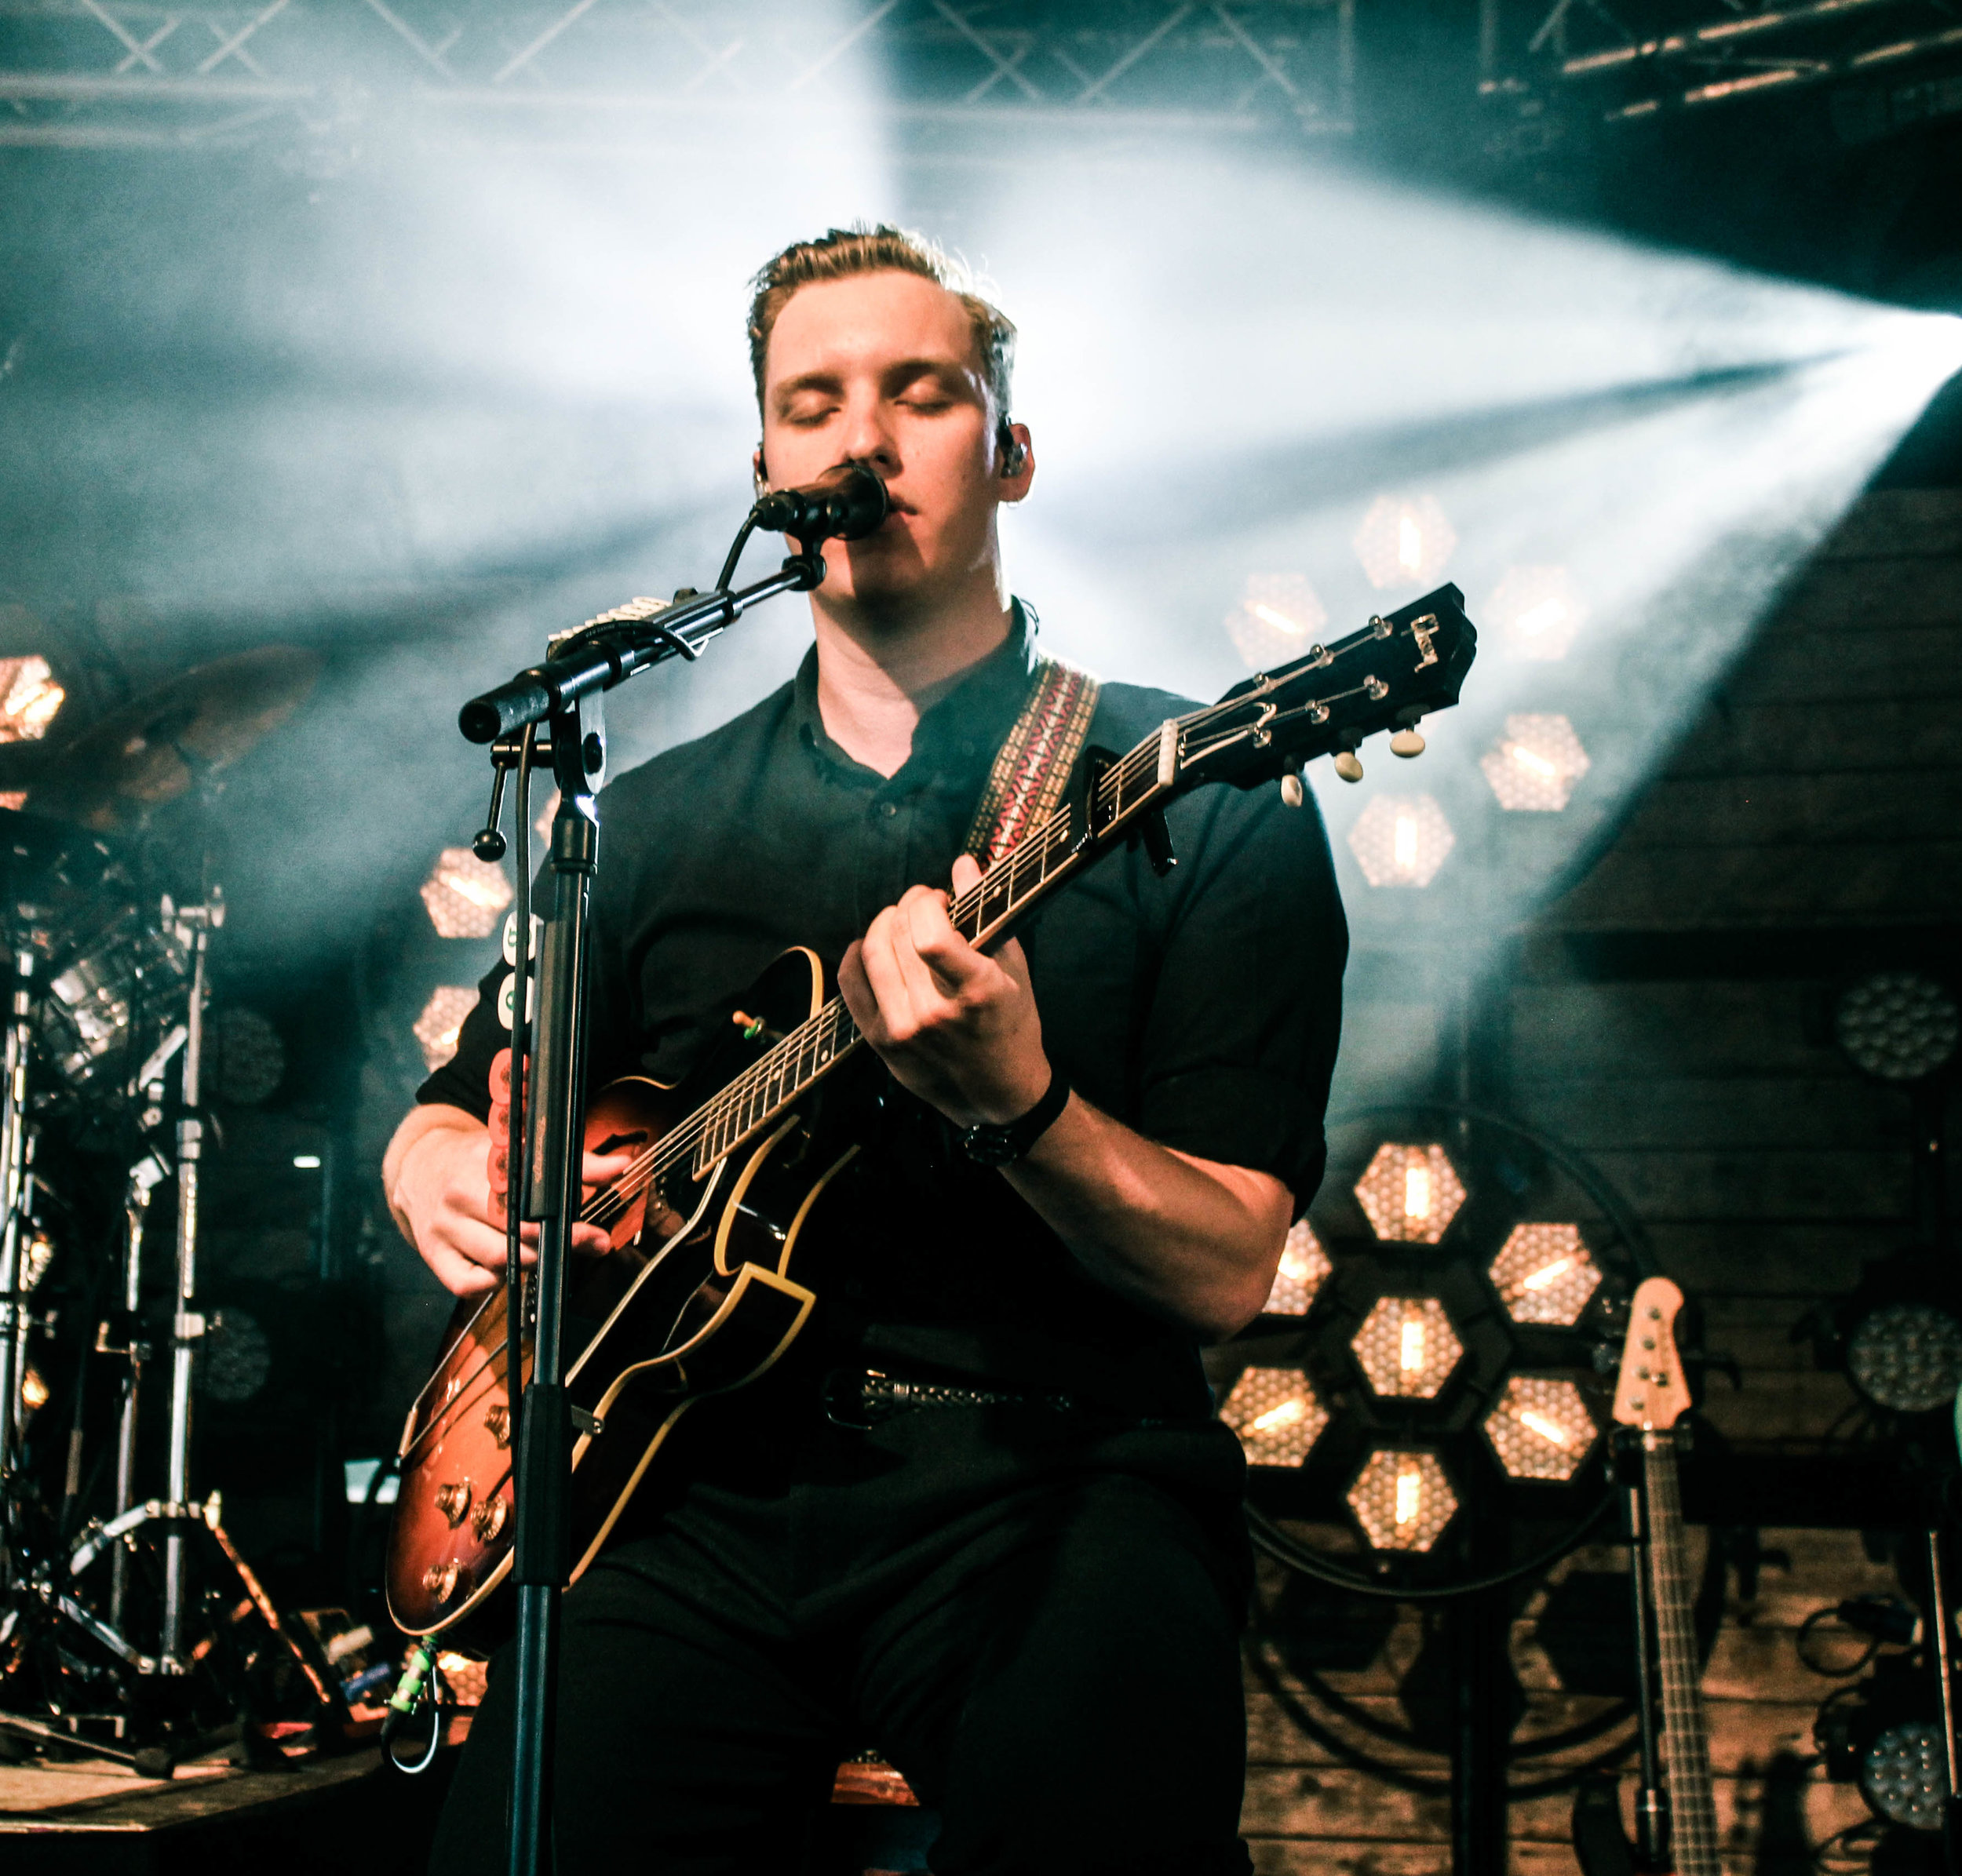 George Ezra at Barn on the Farm - Photo © Concentus Music